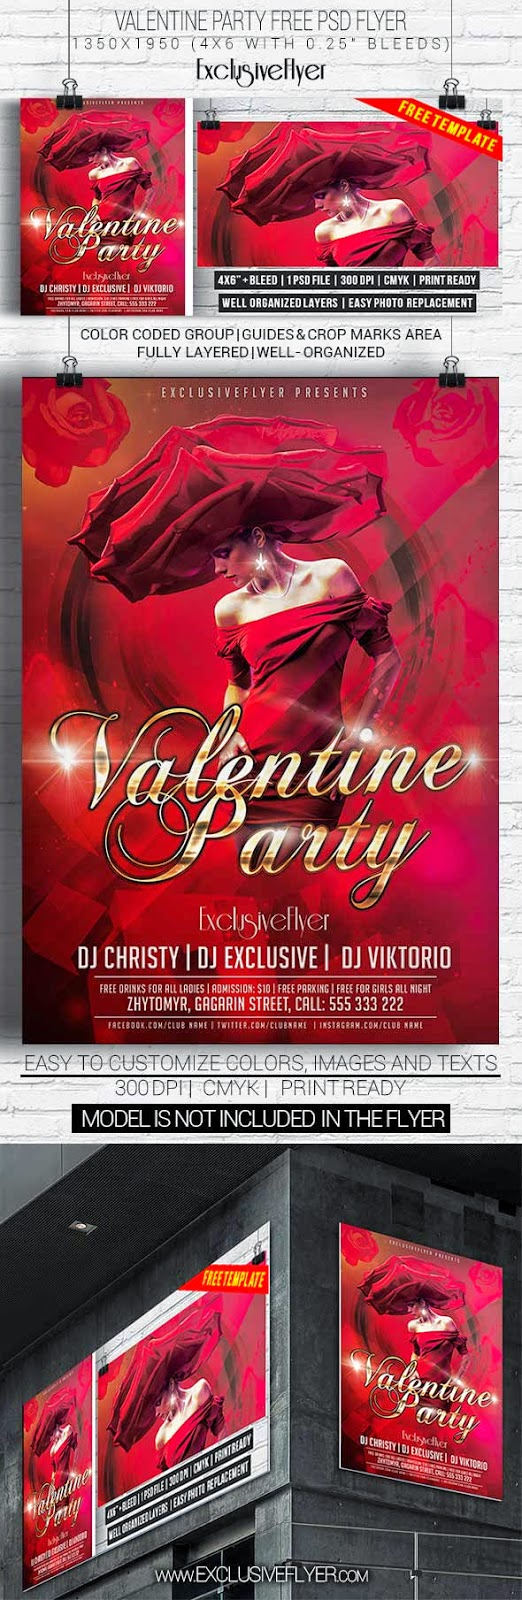 Valentine Party Flyer PSD Template